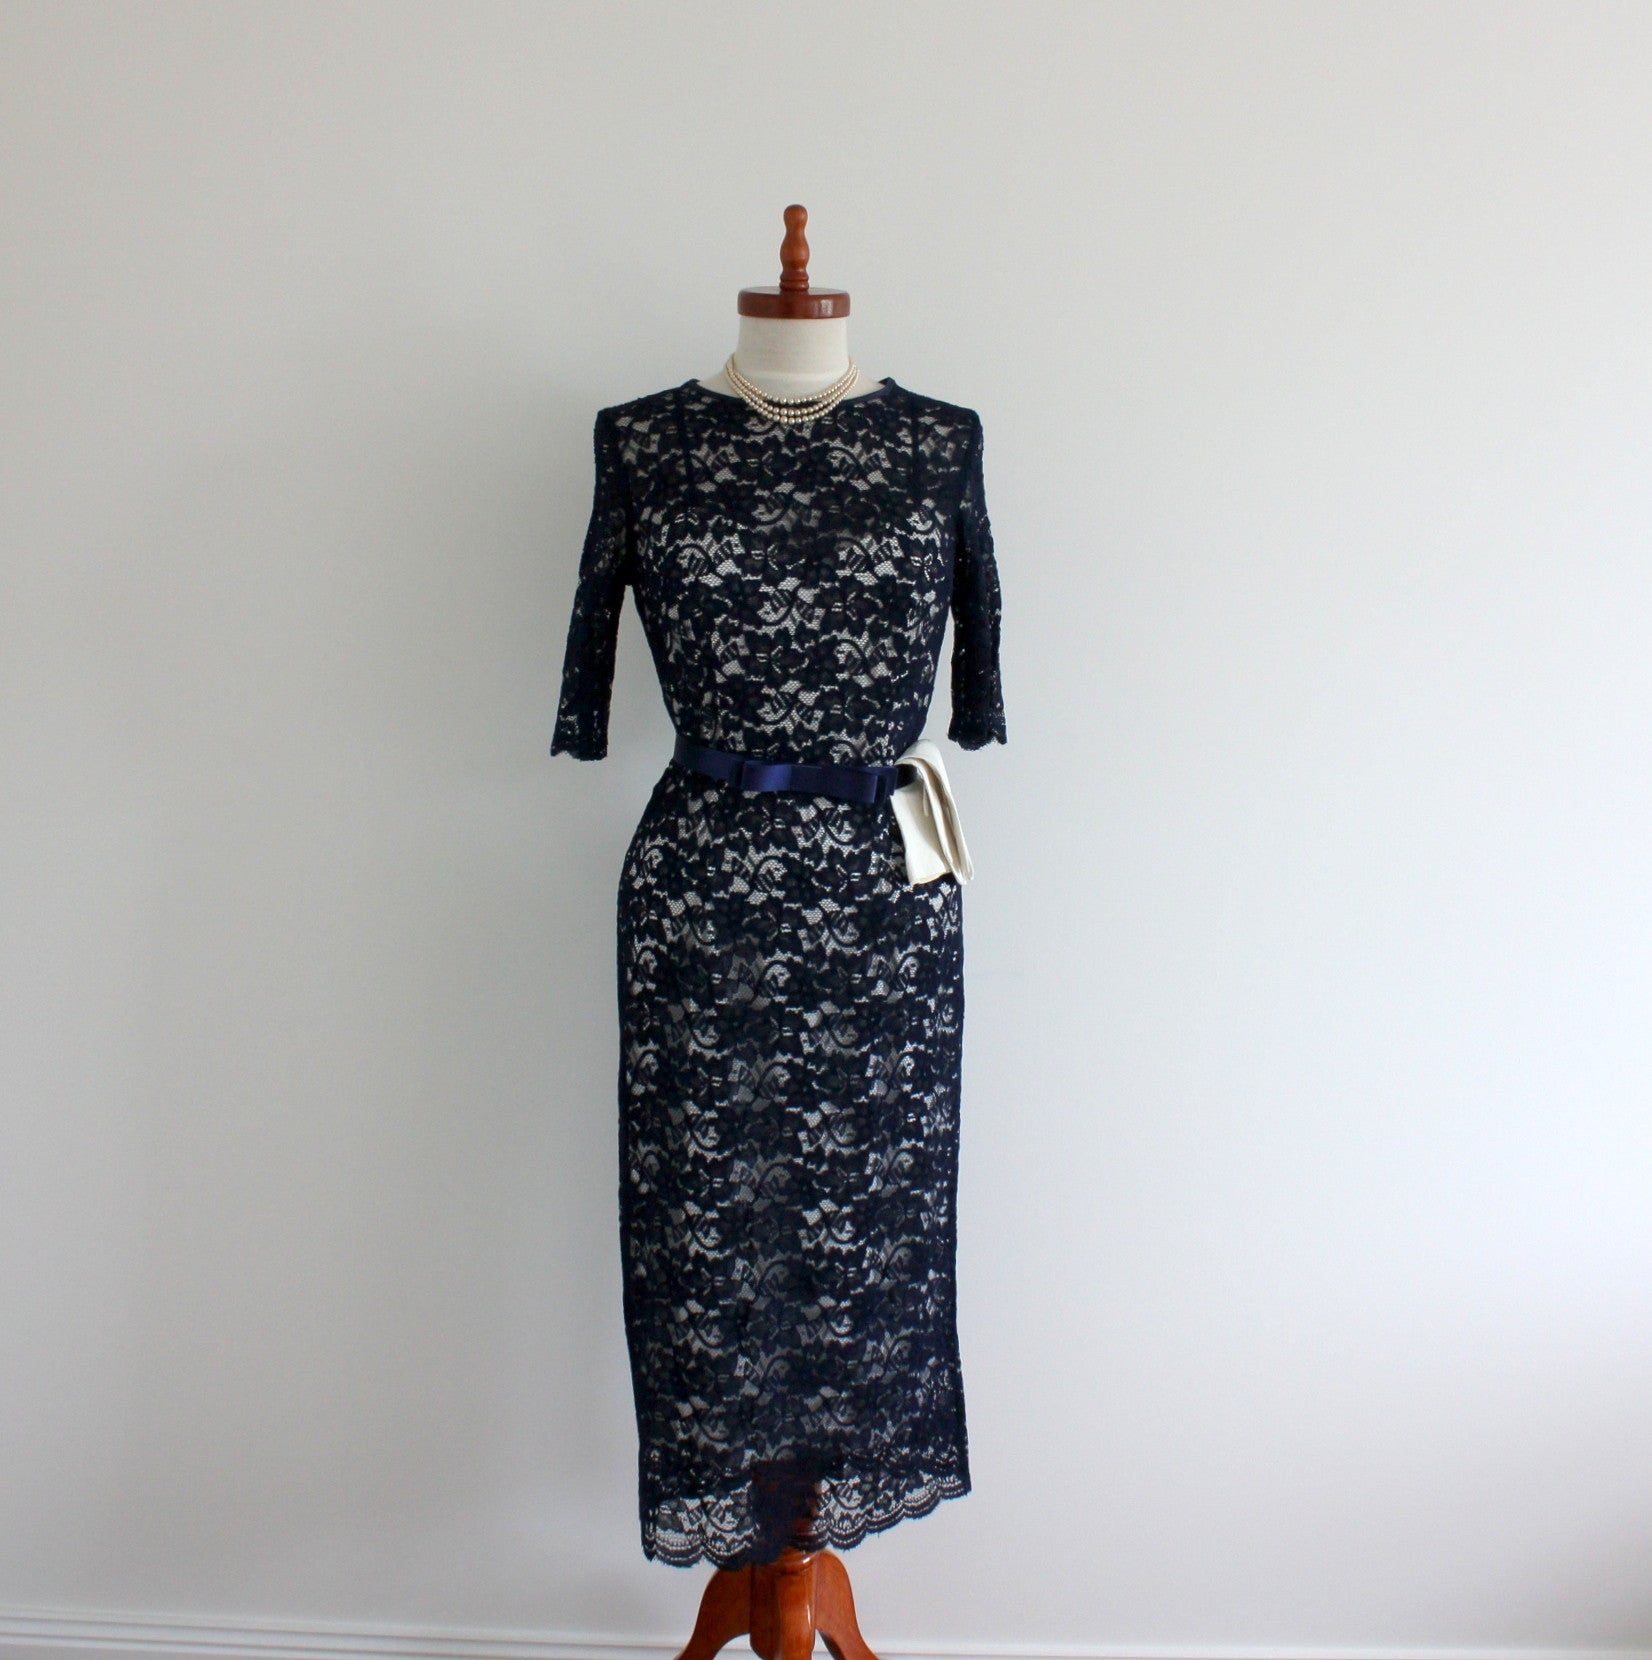 Madam Dior 1960s Style Fitted Lace Dress Minettes Vintage